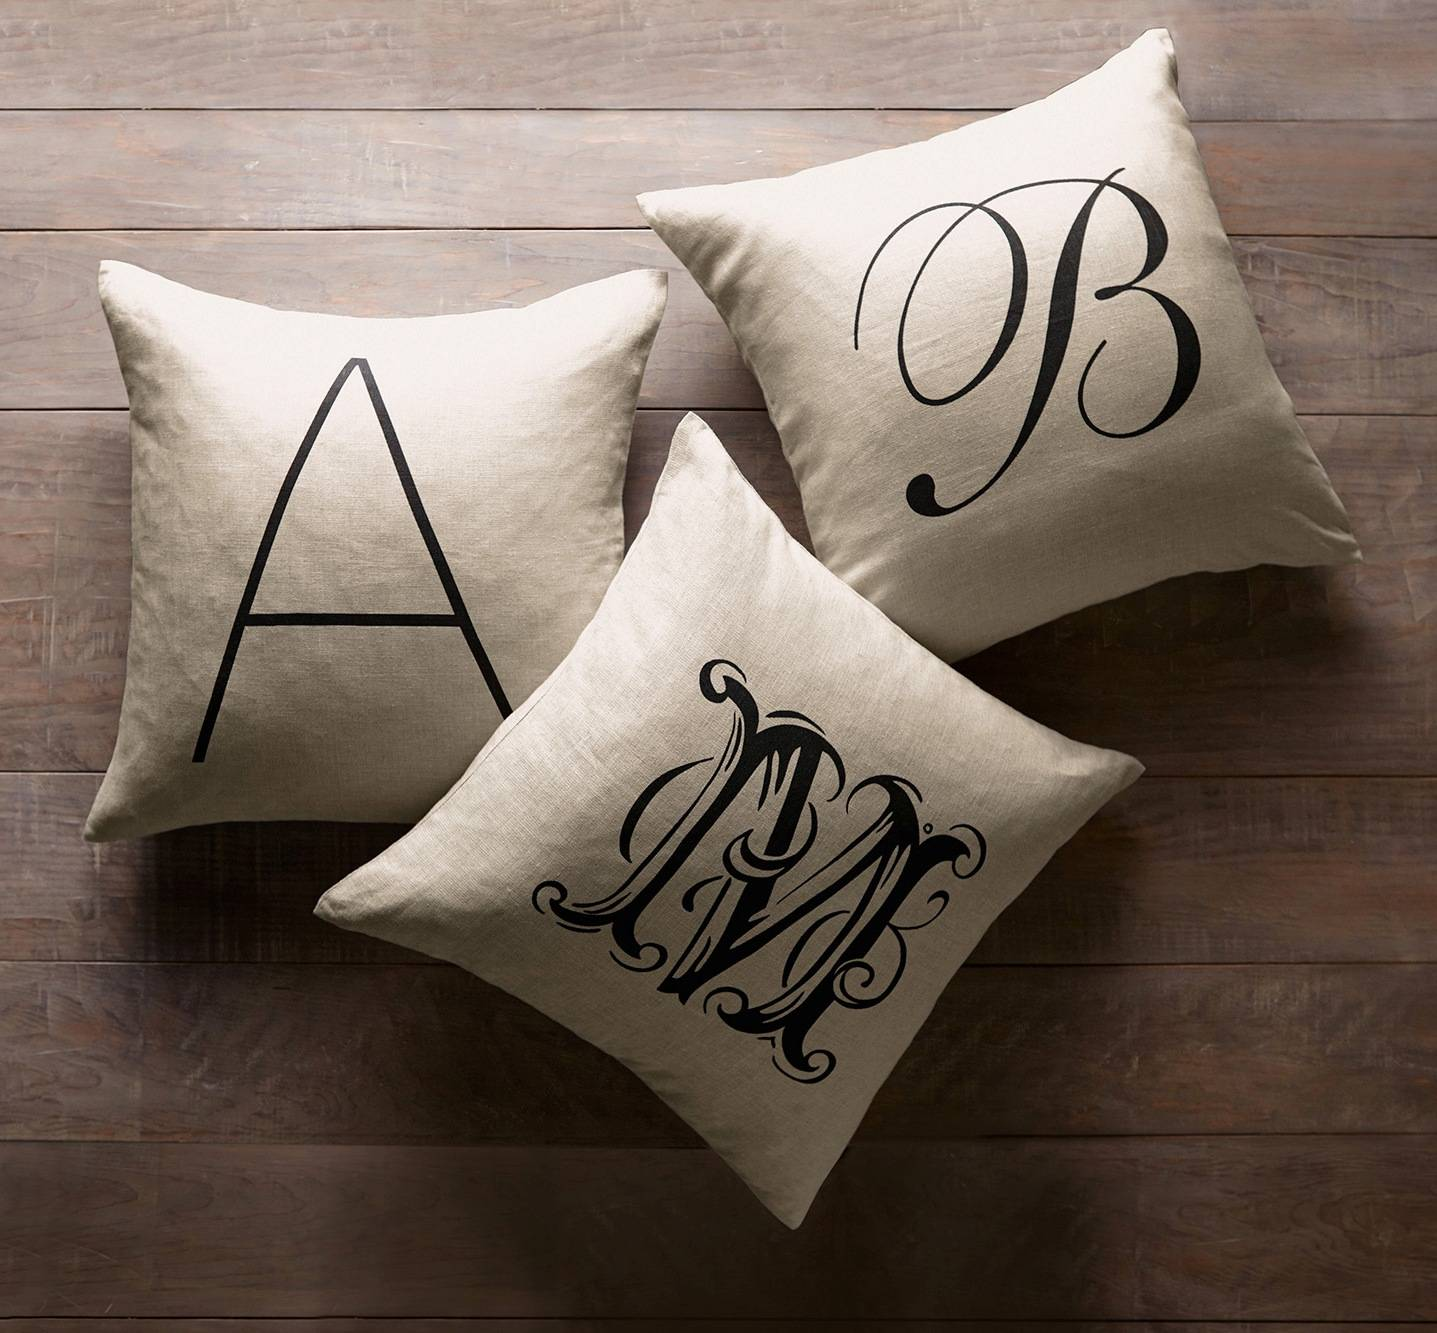 Pottery Barn sells personalized alphabet pillow covers -- a perfect gift for Mom.